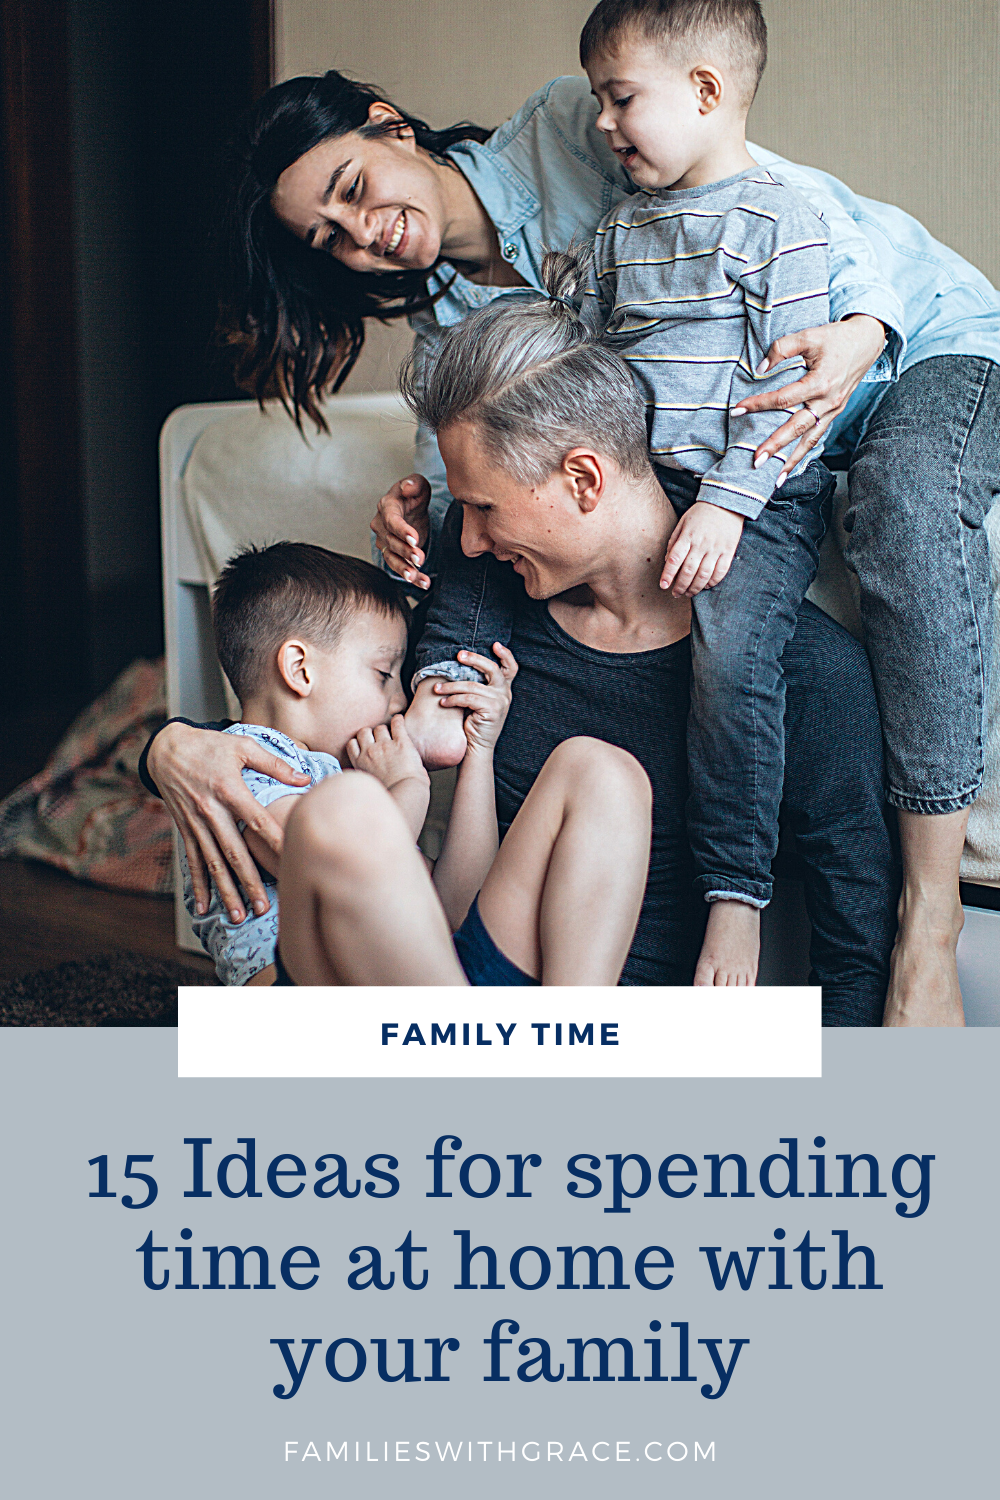 15 Ideas for spending time at home with your family